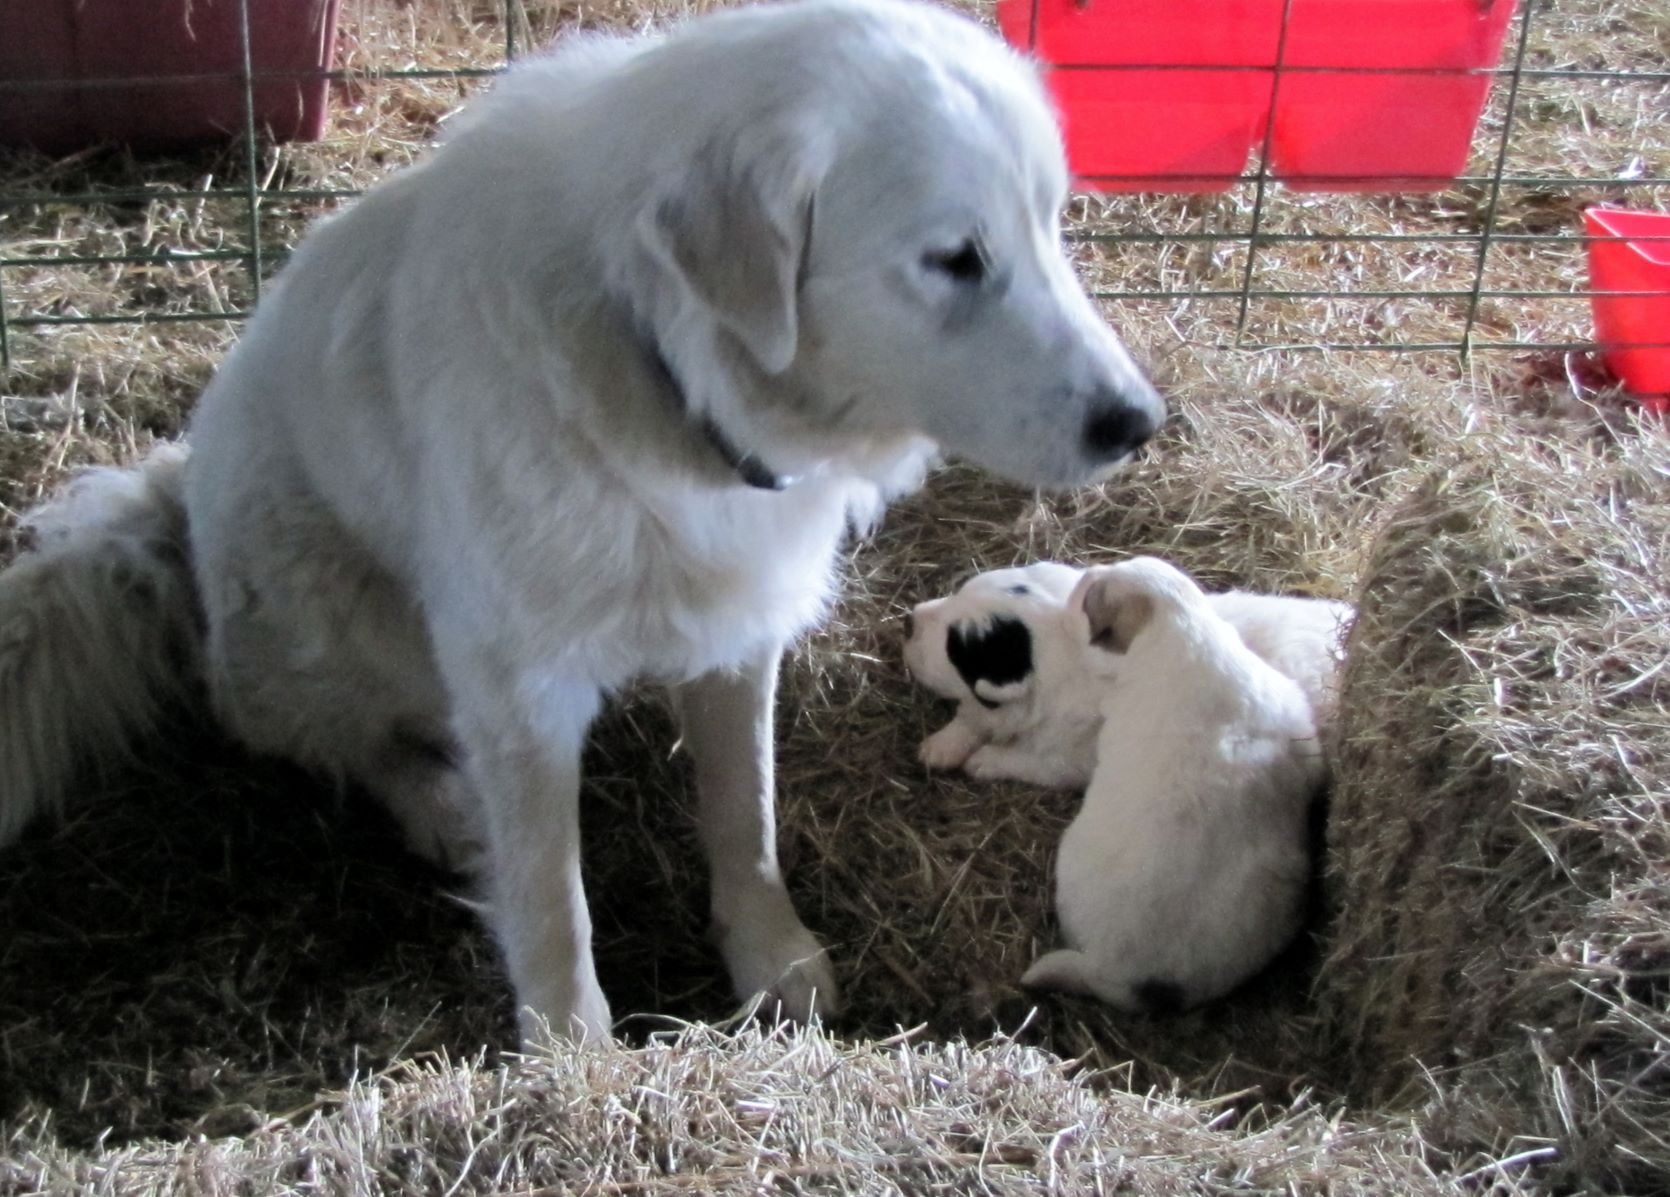 Lilly and Koy, purchased as puppies in 2011, were our first Pyrenees and these are the first pups born in Feb. 2013, Martha and George.